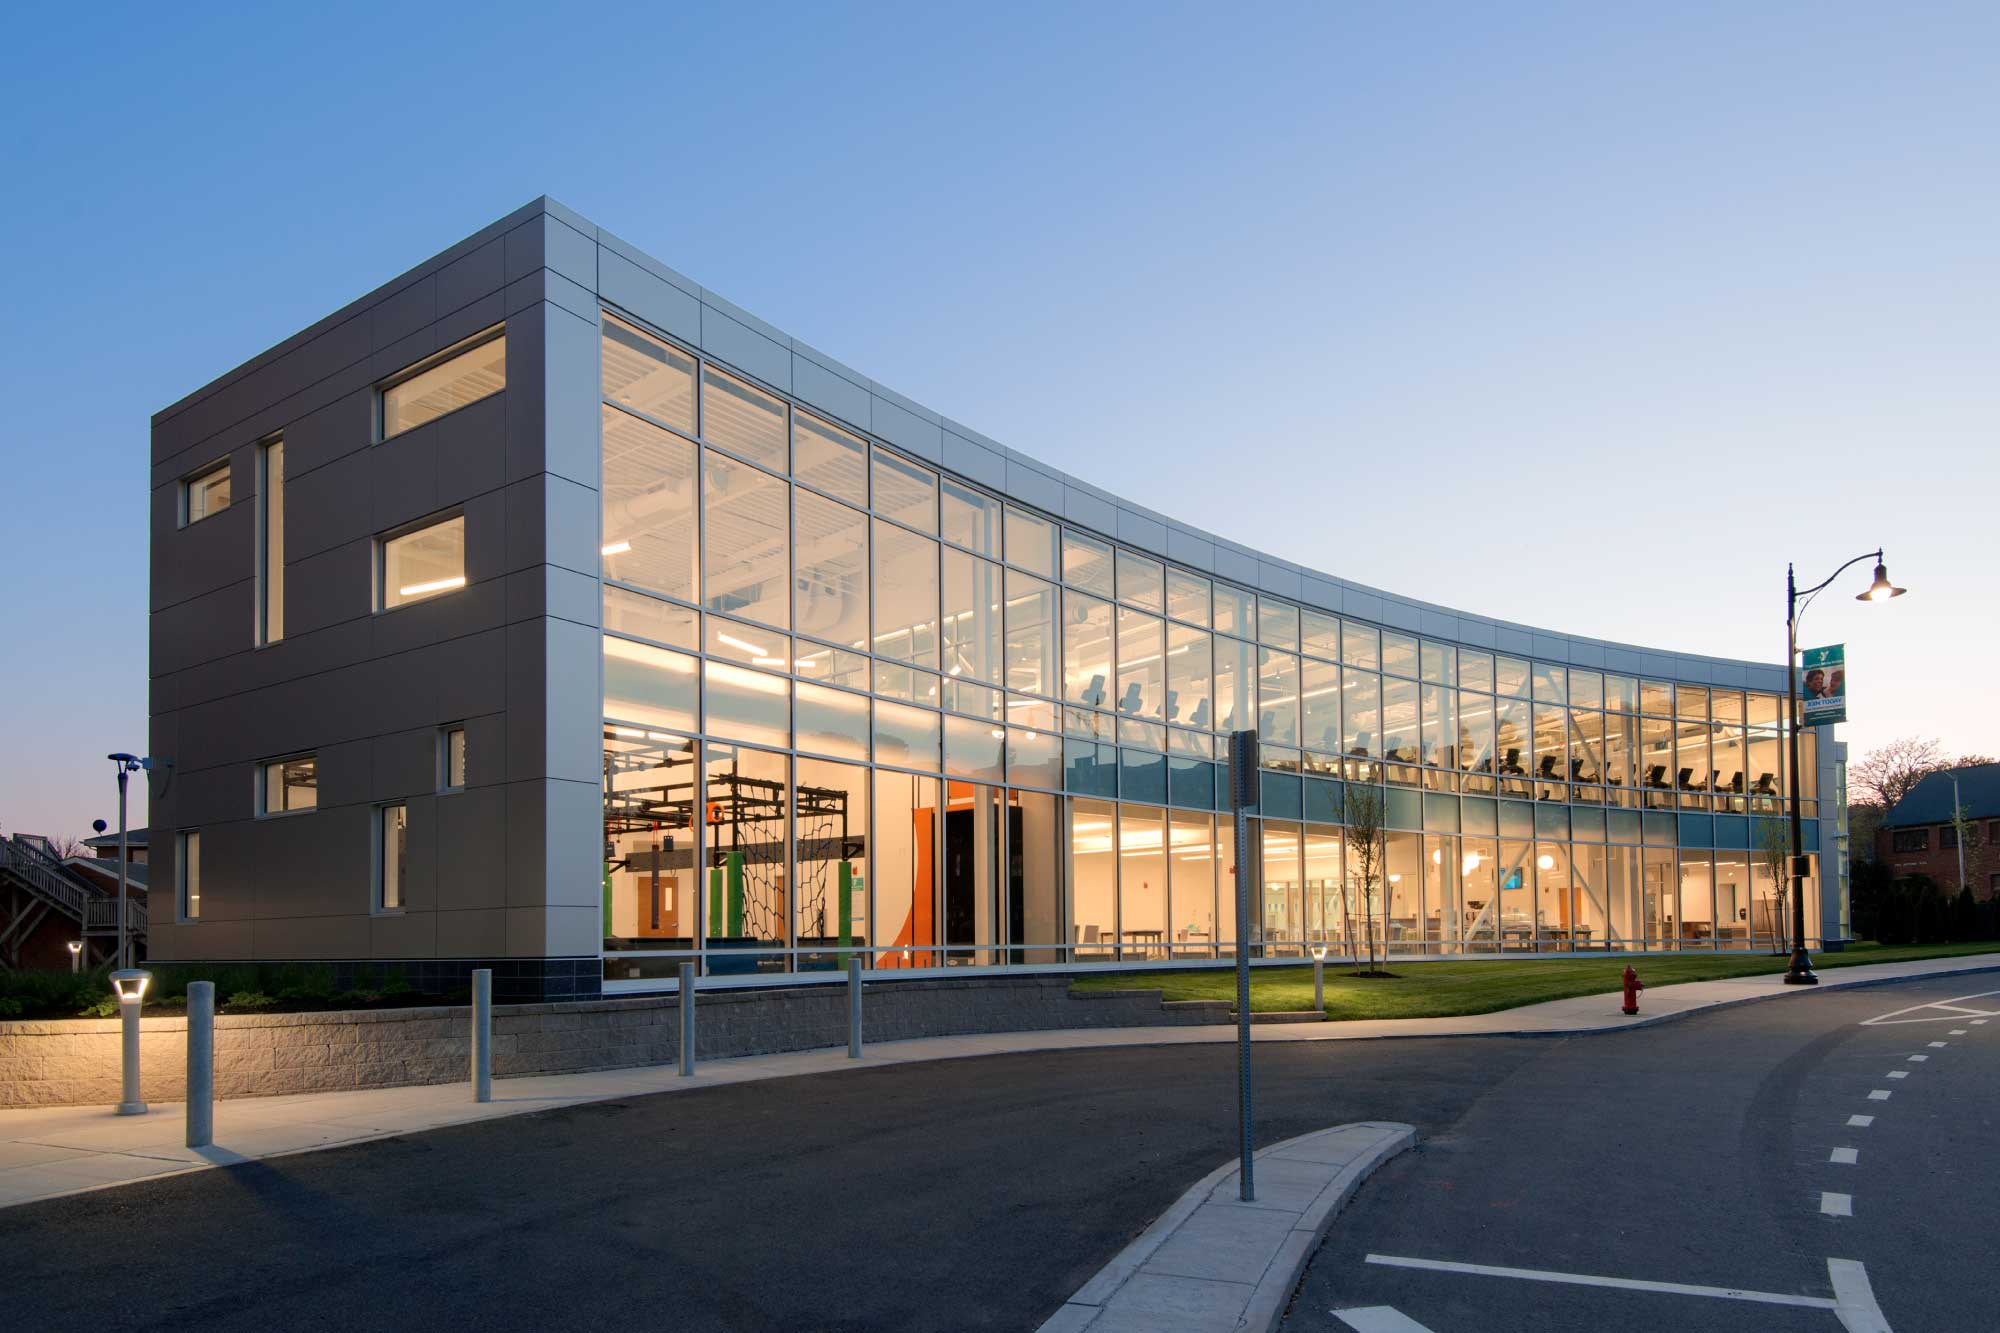 Maugel and Campanelli Complete New Demakes Family YMCA in Lynn